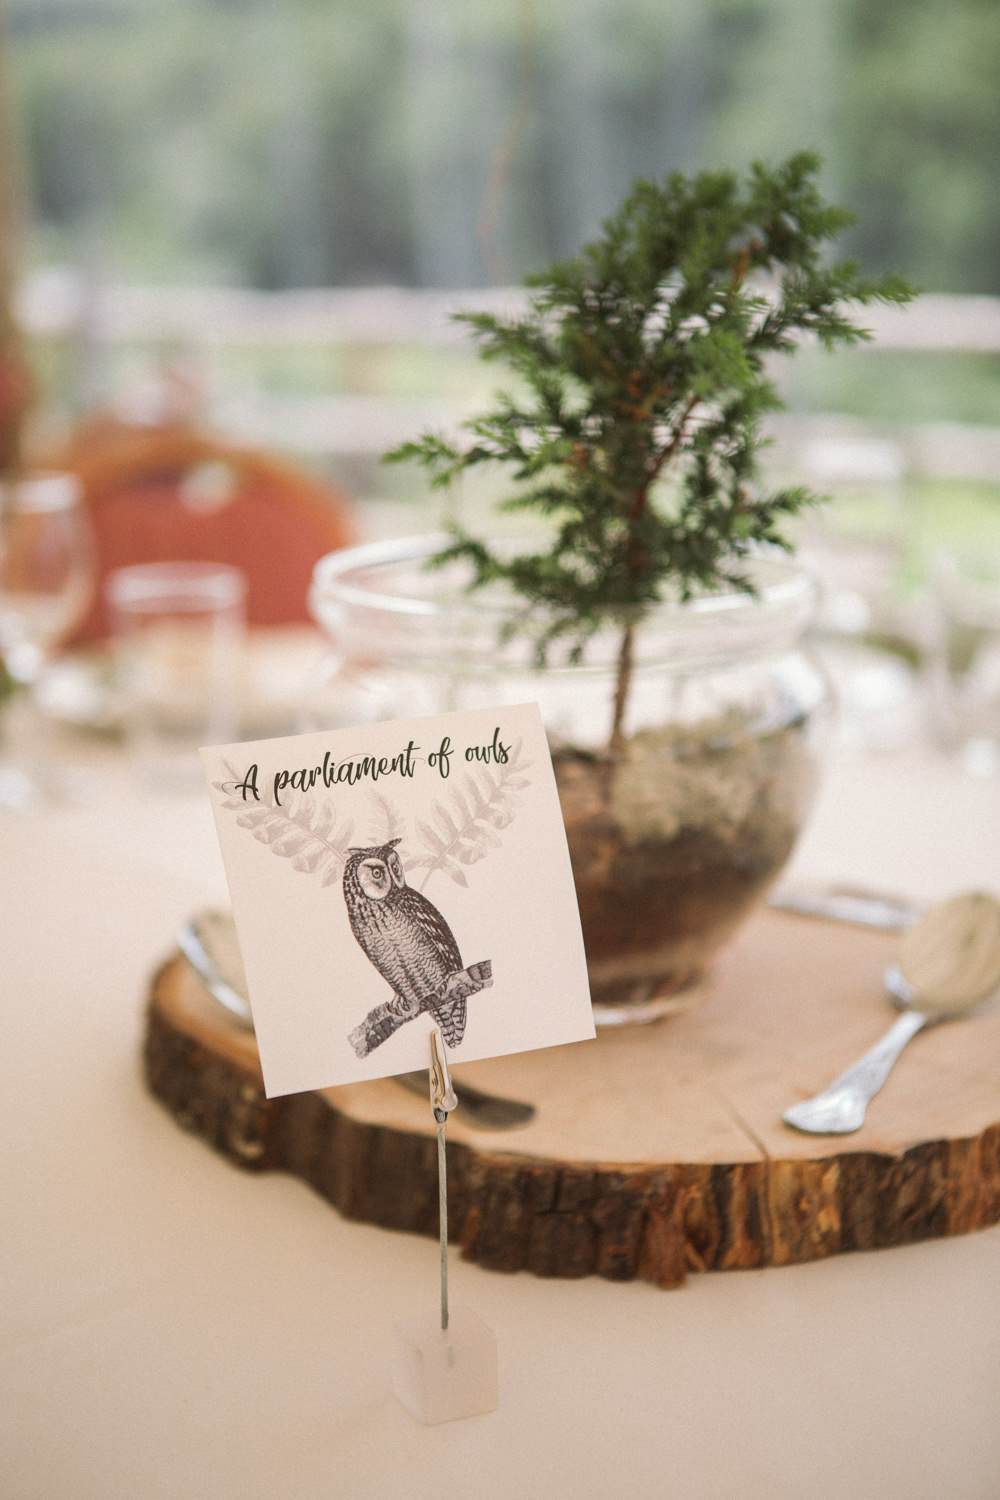 Middle Coombe Farm Wedding Emma Stoner Photo